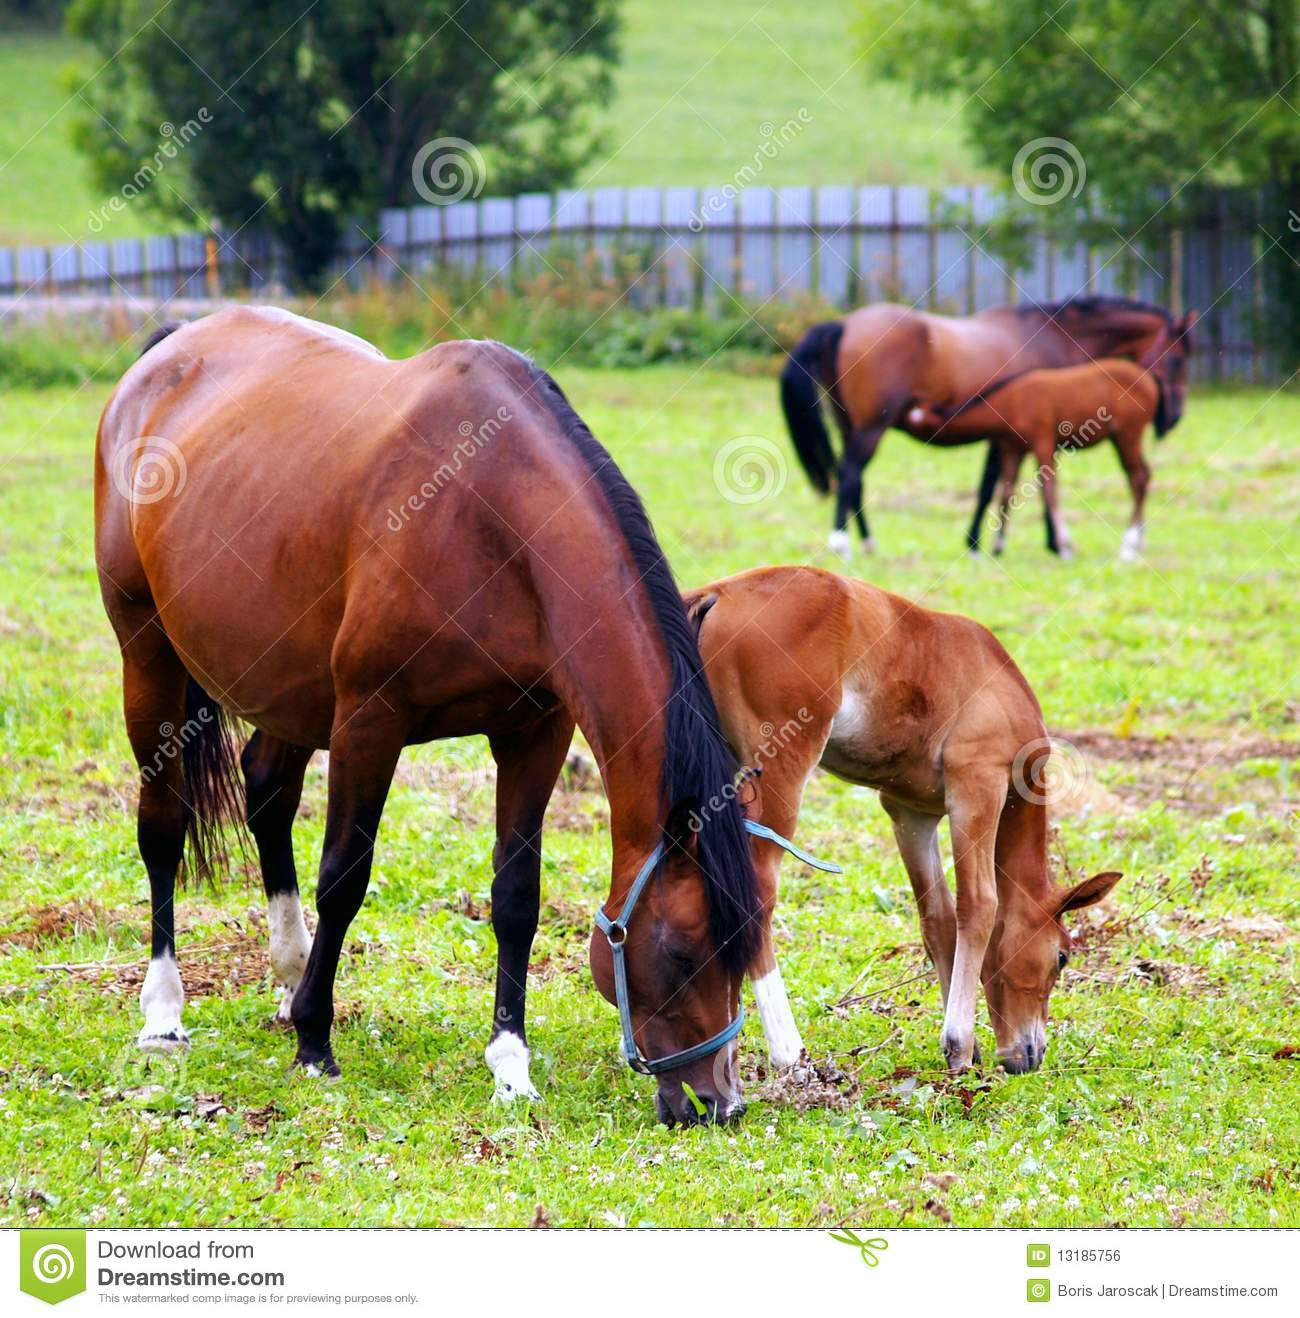 Horses grazing on the field.